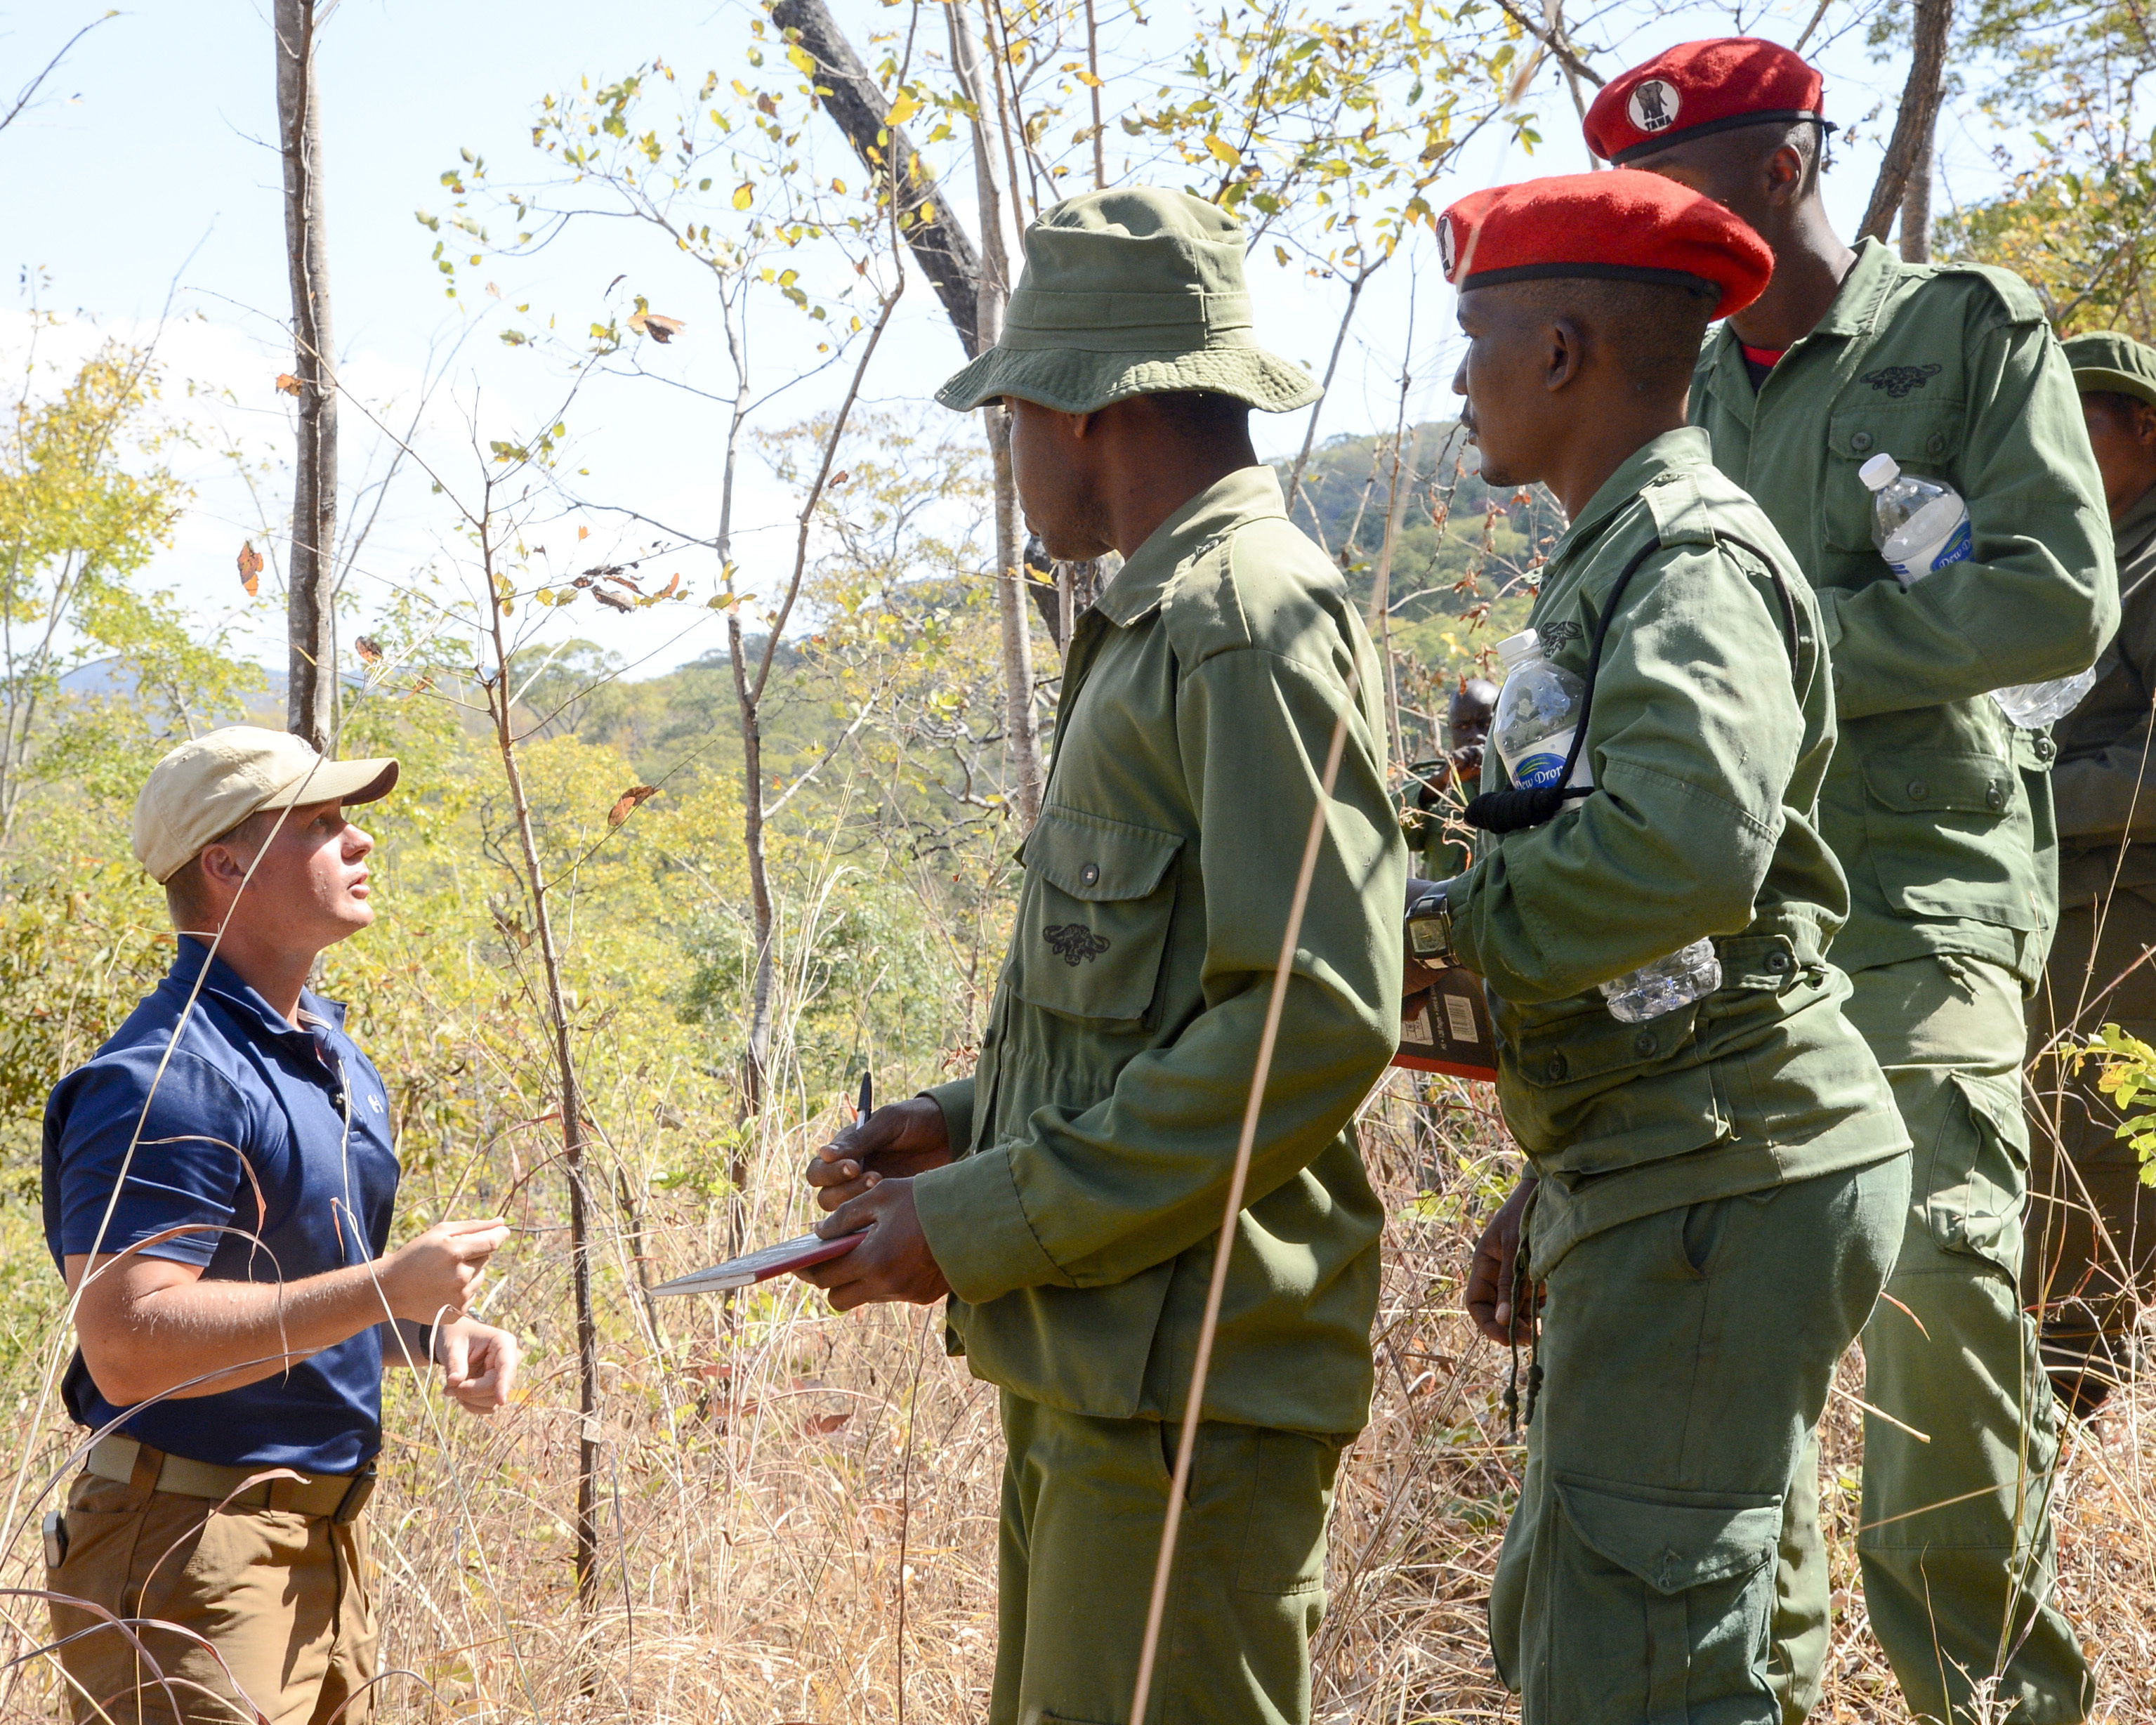 U.S. Army Maj. Kevin Jusza, with the 404th Civil Affairs Battalion, assigned to Combined Joint Task Force-Horn of Africa provides guidance for Tanzania Wildlife Management Authority (TAWA) patrol game wardens for a ground surveillance practical exercise during a Counter Illicit Trafficking course, in Ngwala, Tanzania, July 24, 2018. The course, provided by the 404th Civil Affairs Battalion, is a month-long course to enhance TAWA's anti-poaching capabilities in Tanzania. (U.S. Navy Photo by Mass Communication Specialist 2nd Class Timothy M. Ahearn)